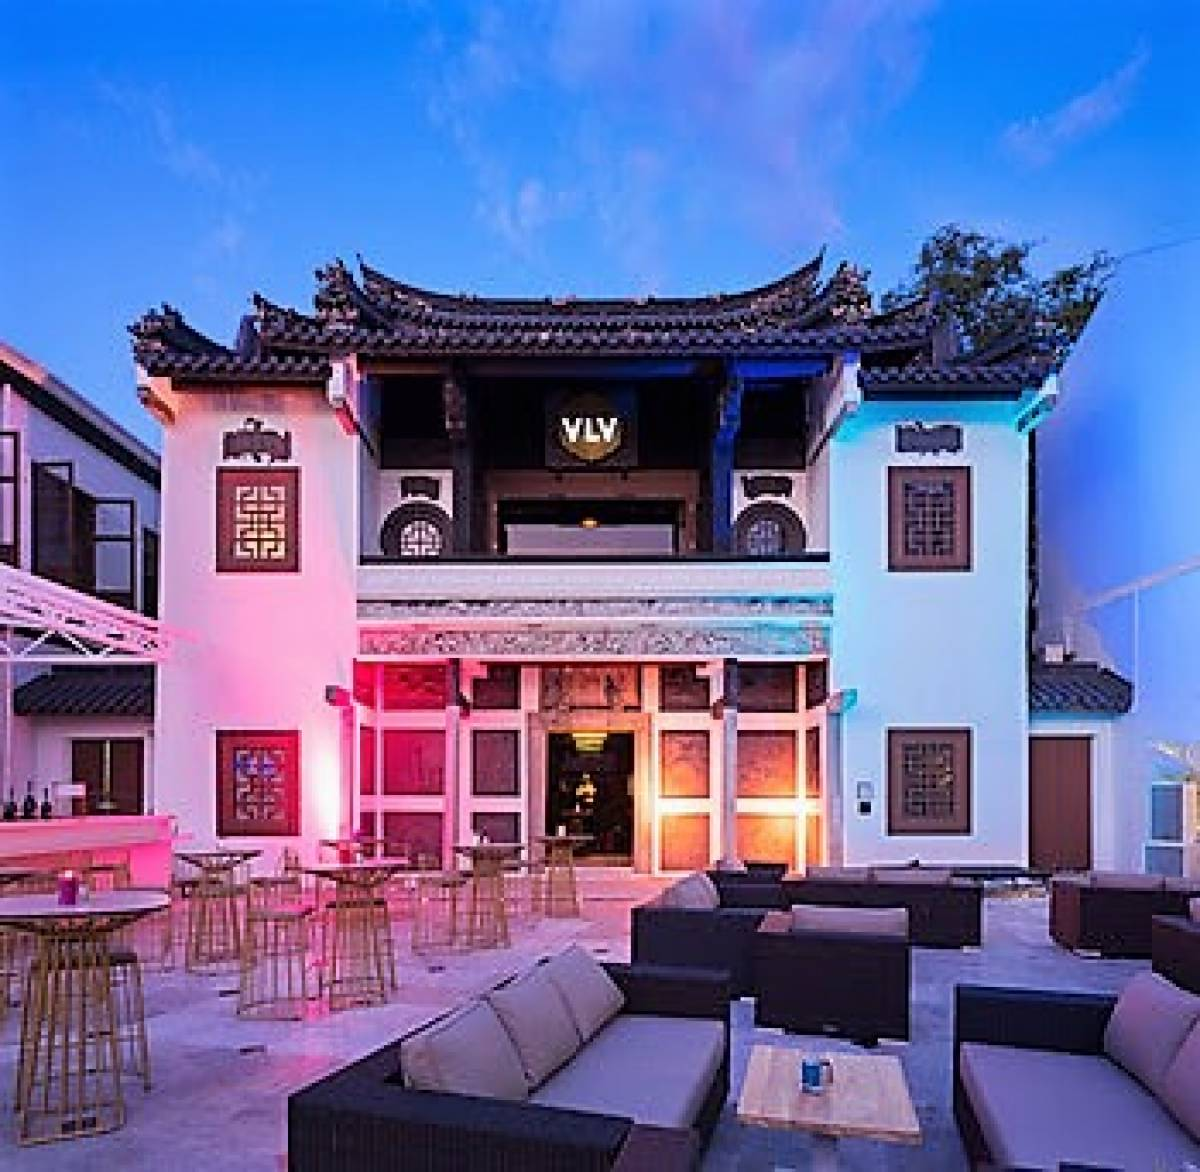 VLV Singapore – An All-in-One Lifestyle Destination